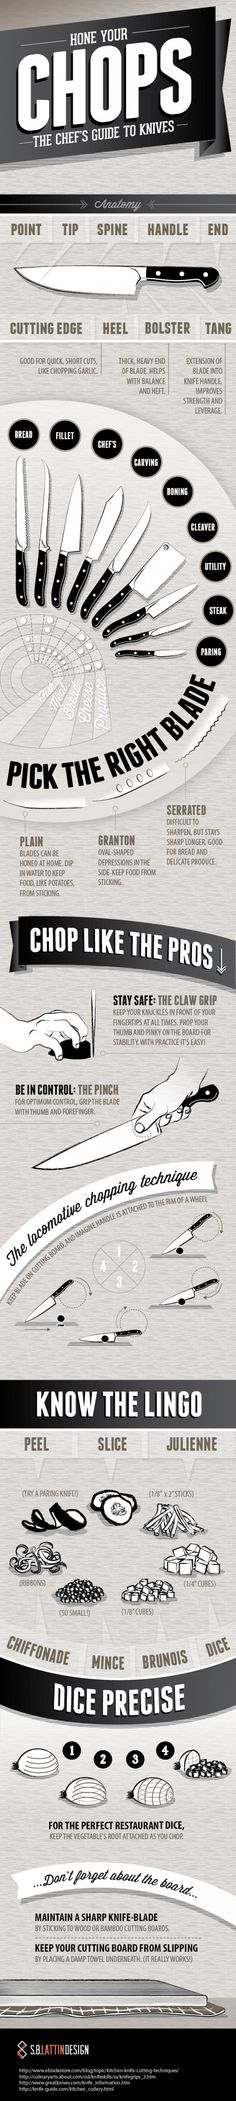 Hone Your Chops: The Chef's Guide to Knives Infographic